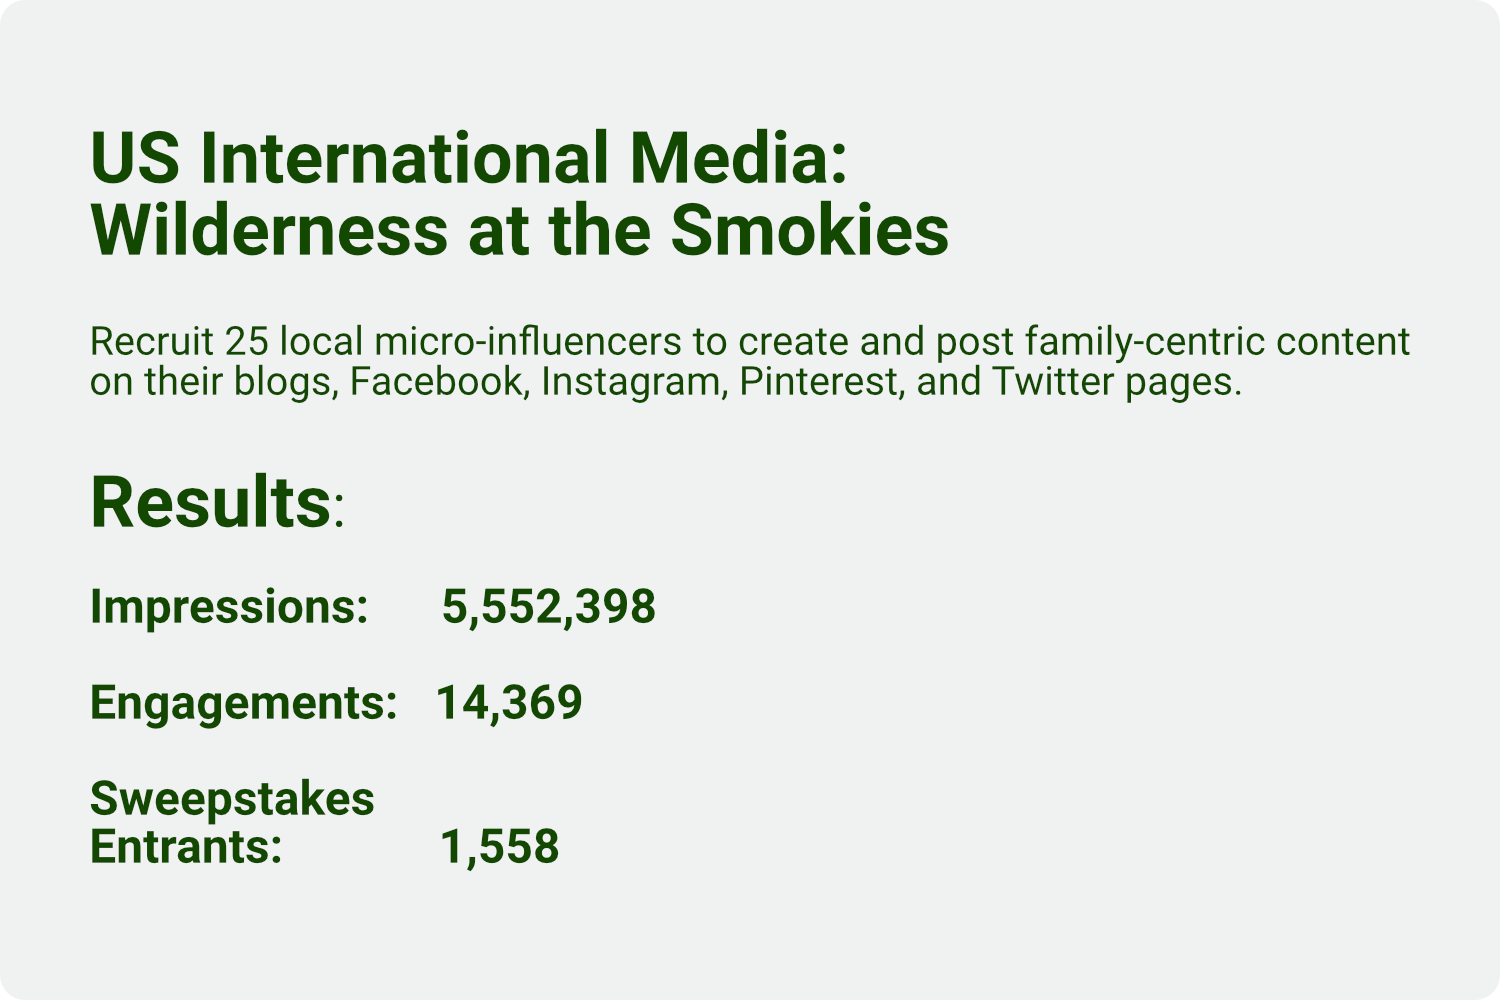 US International Media's Wilderness at the Smokies campaign results.